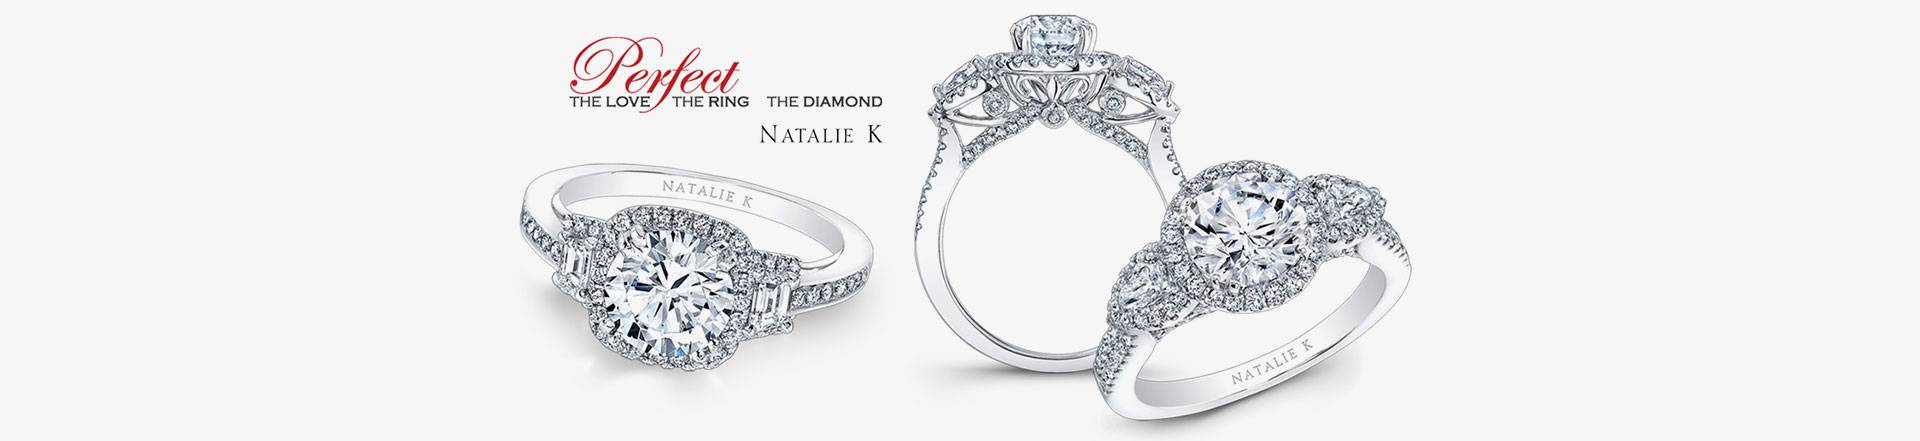 pefect by new engagement collections wedding jewelry designer natalie fine rings k